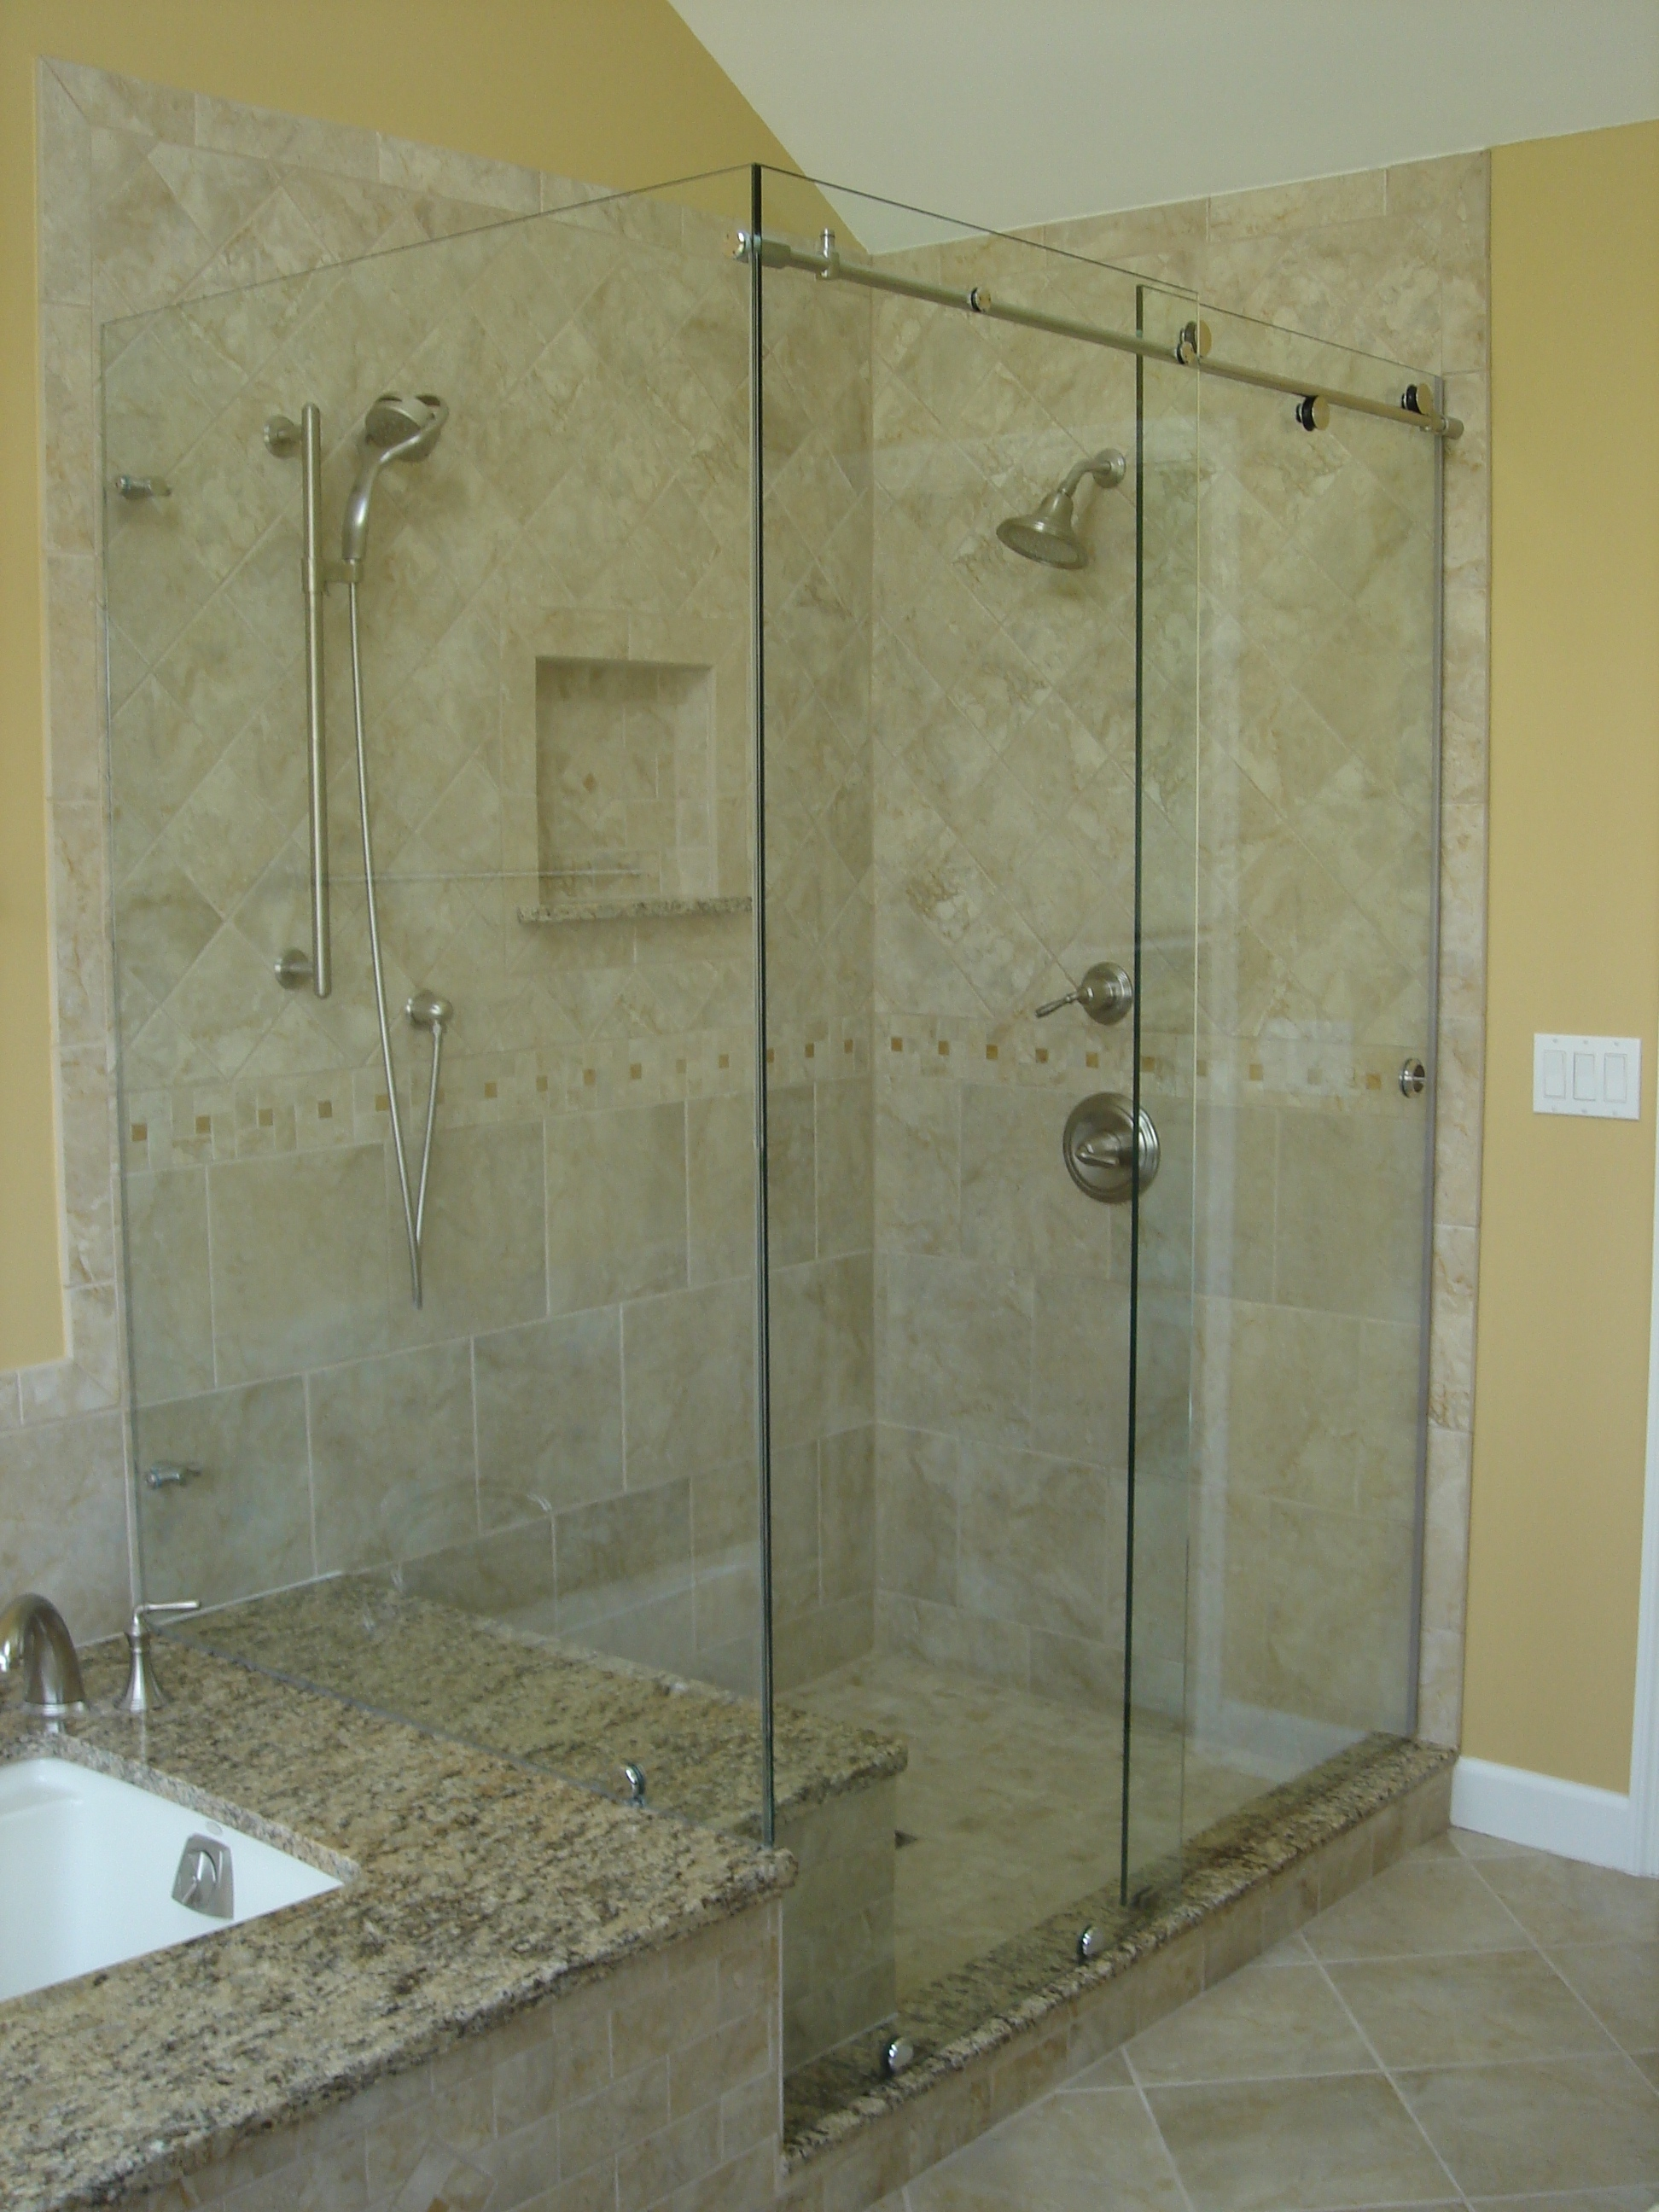 Jacuzzi Shower Door Sweep